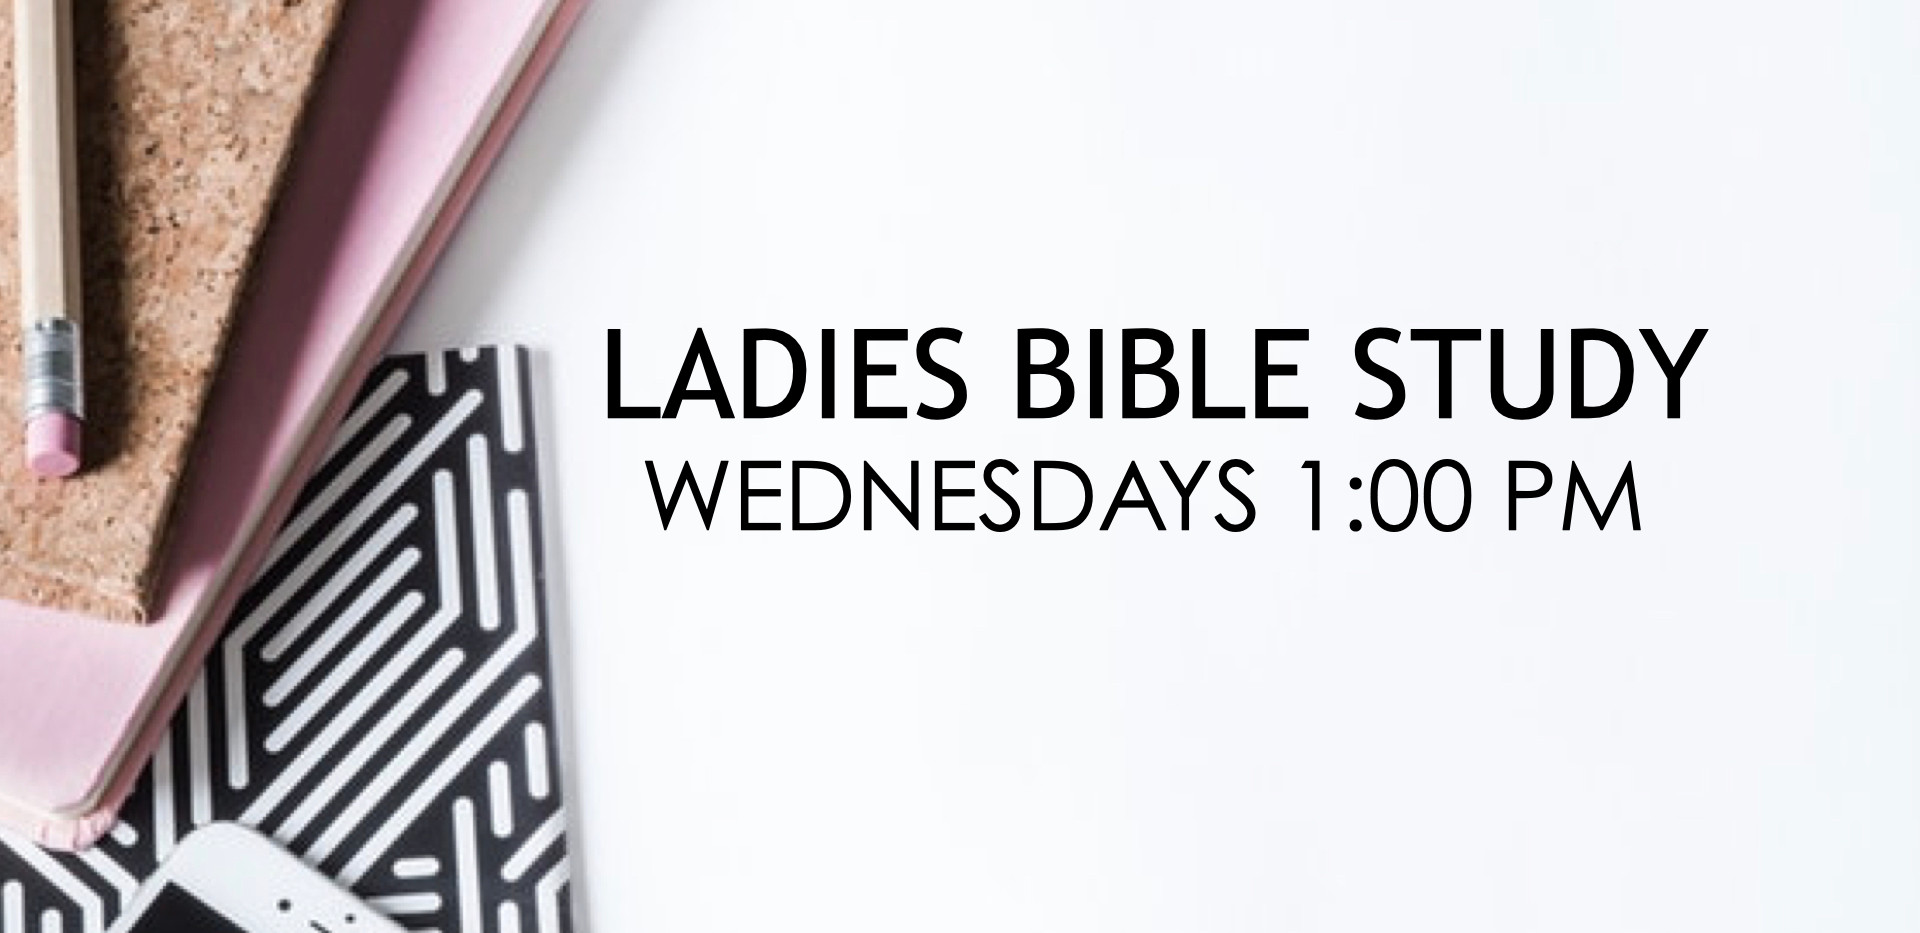 ladies bible study.jpeg